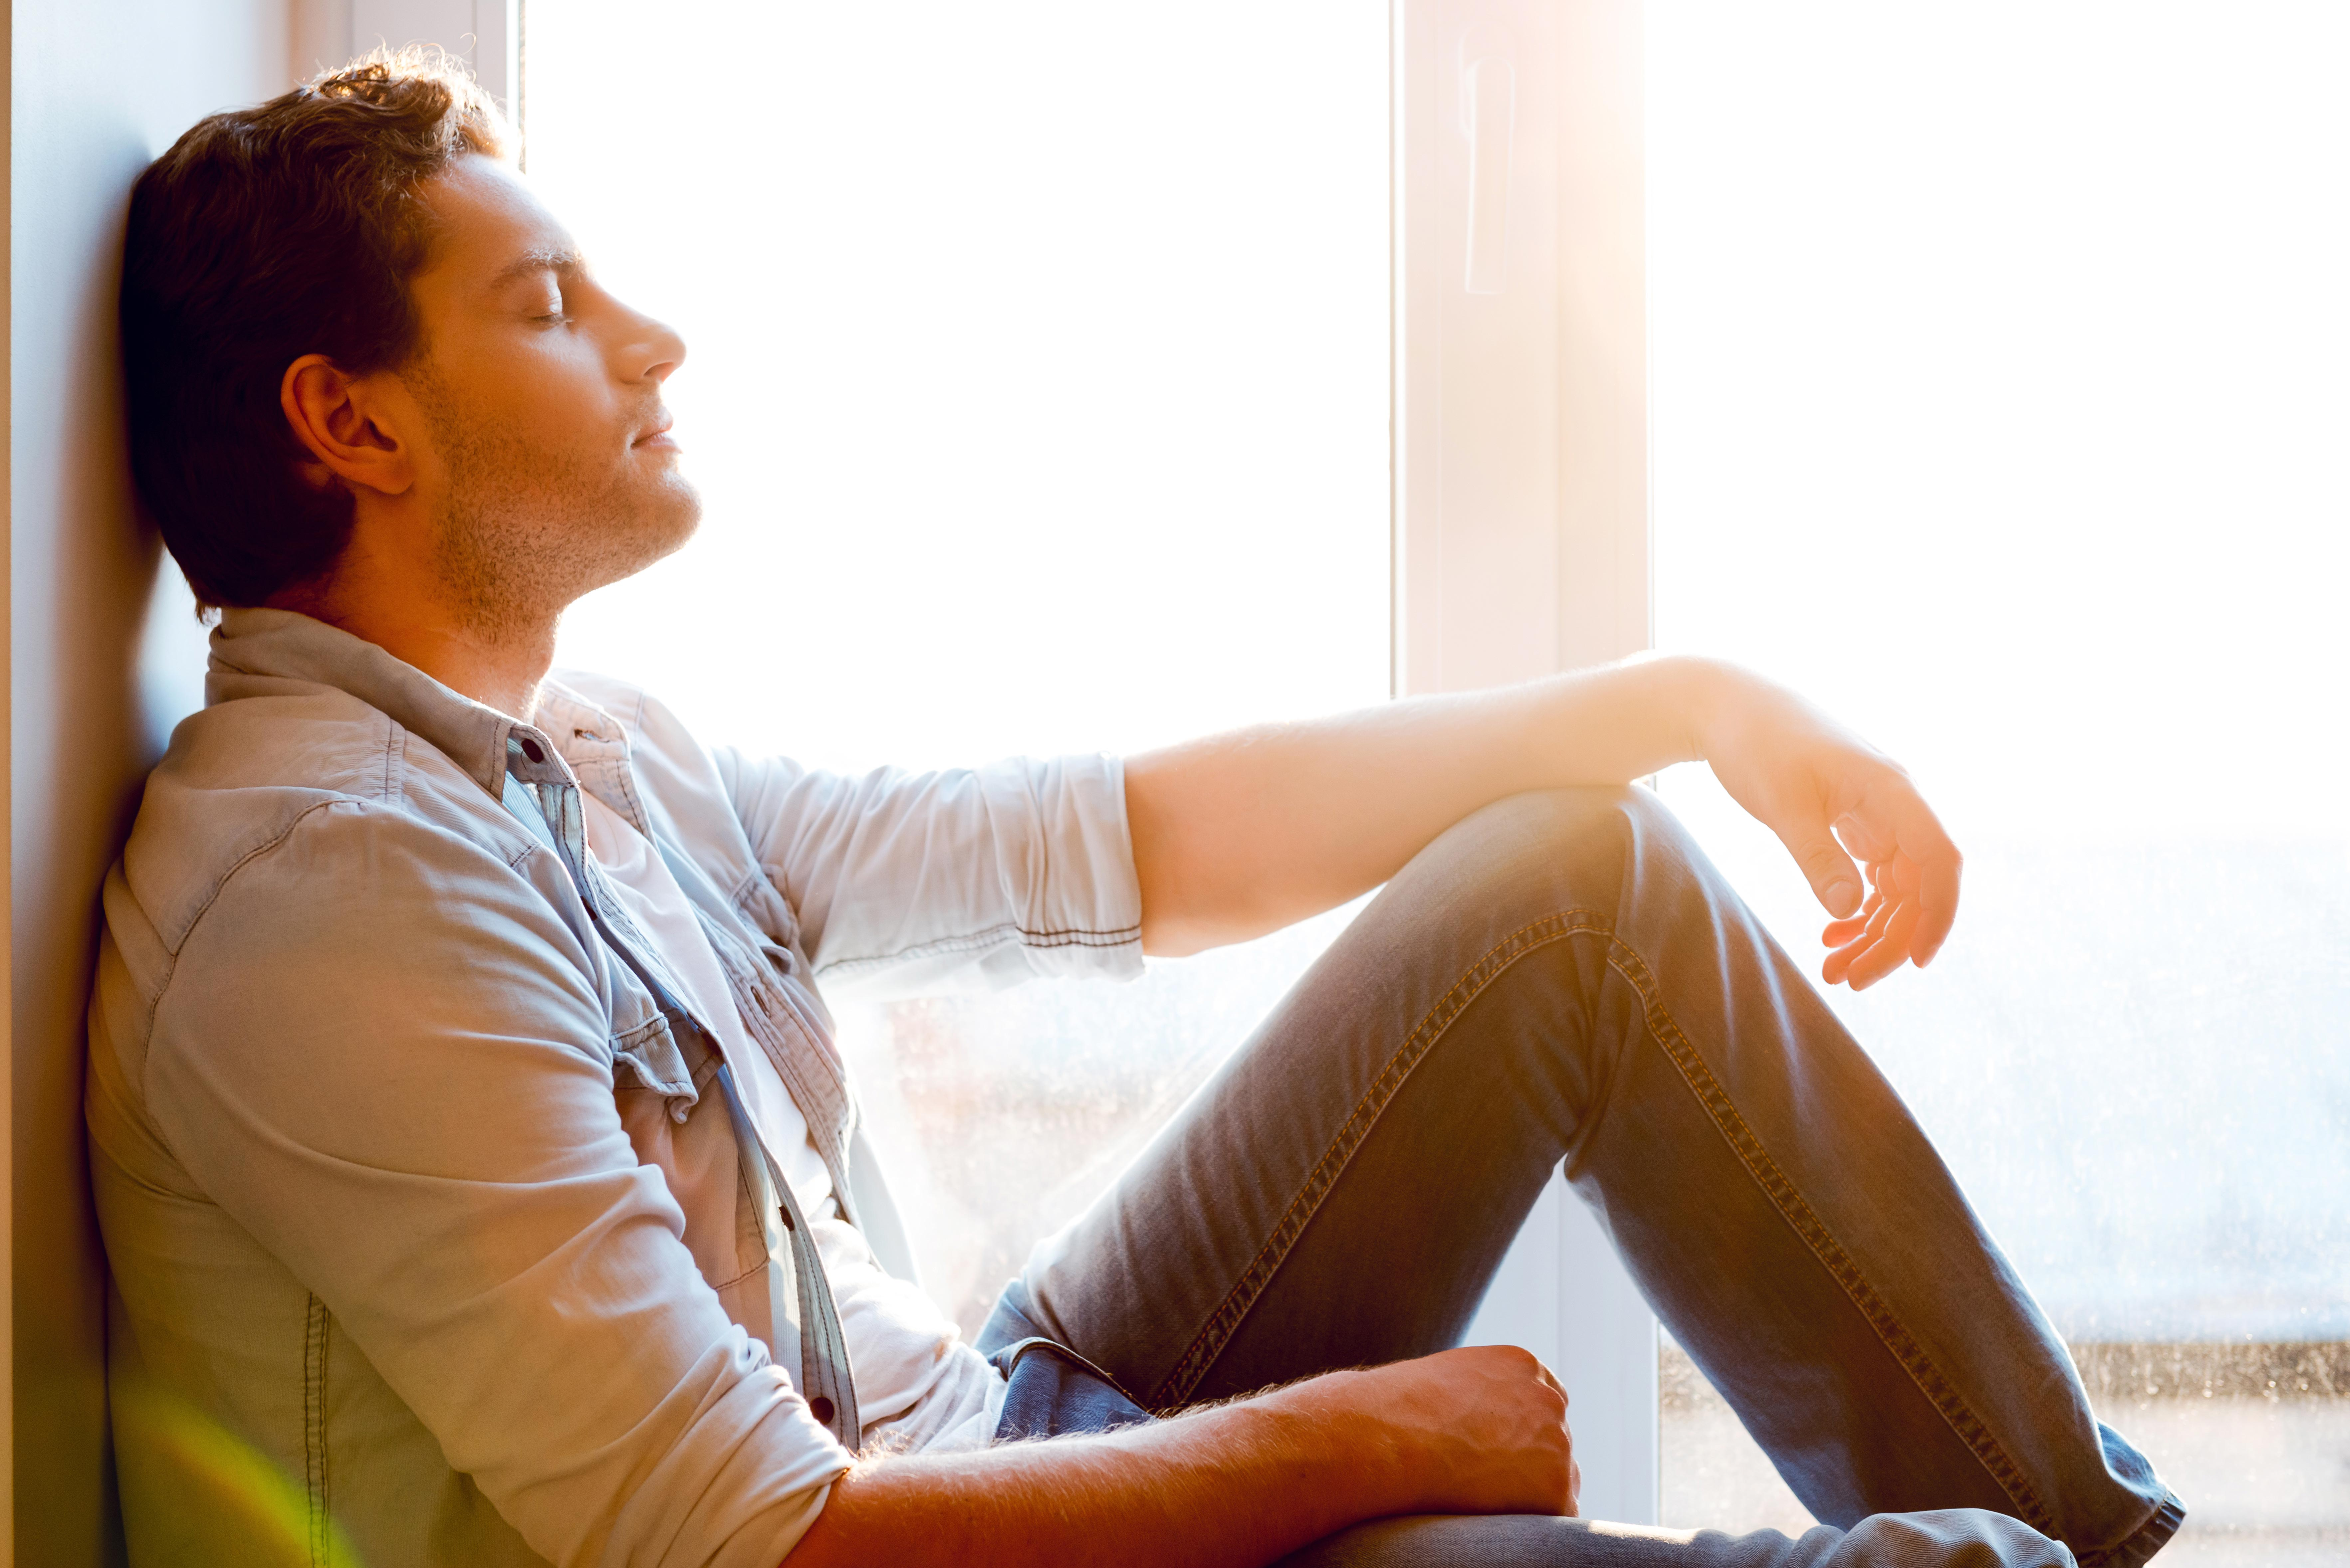 Man enjoying peace and quiet by a window